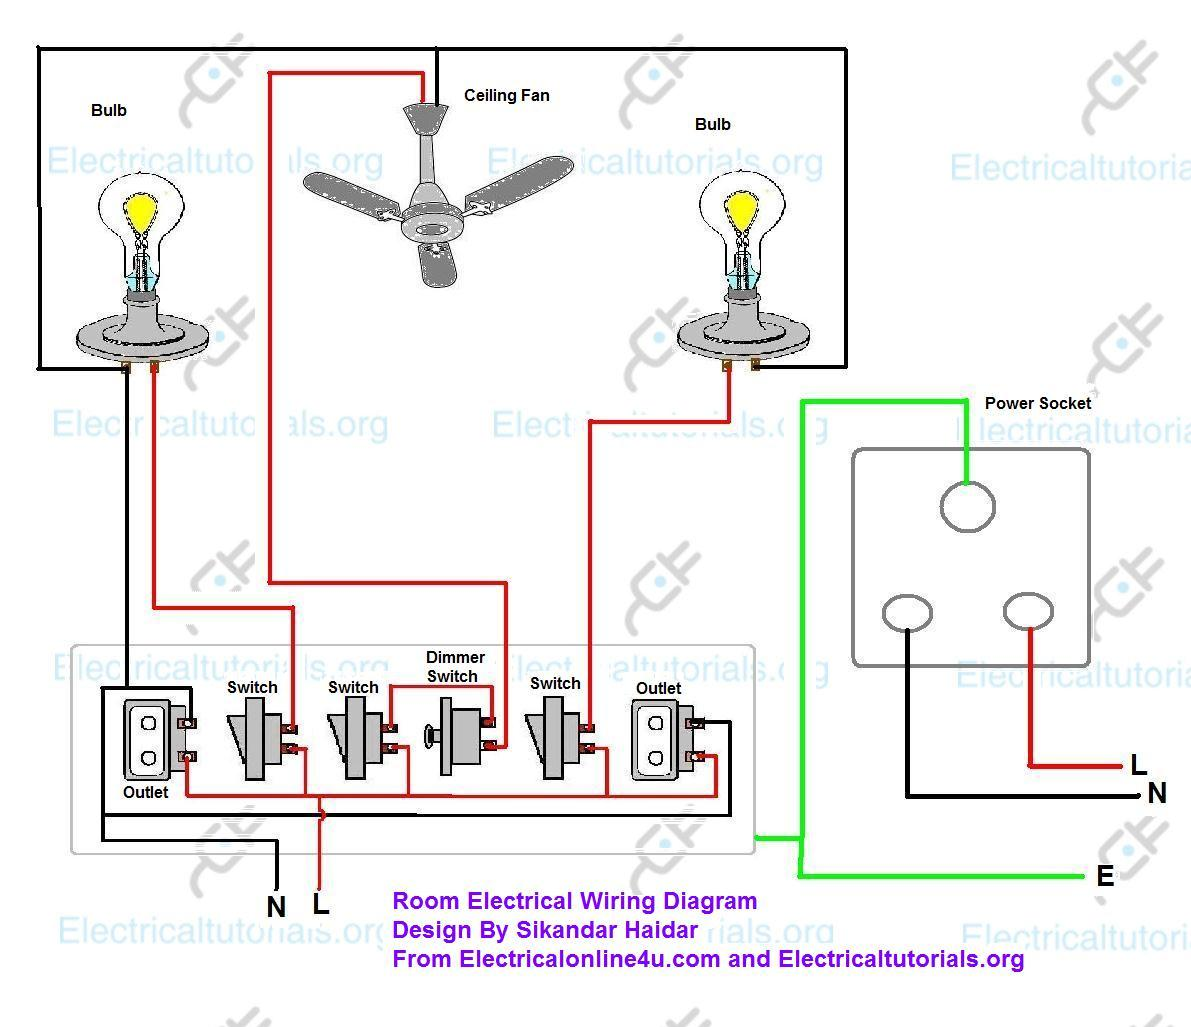 medium resolution of room wiring diagram wiring diagram home wiring diagram for room stat wiring diagram for room